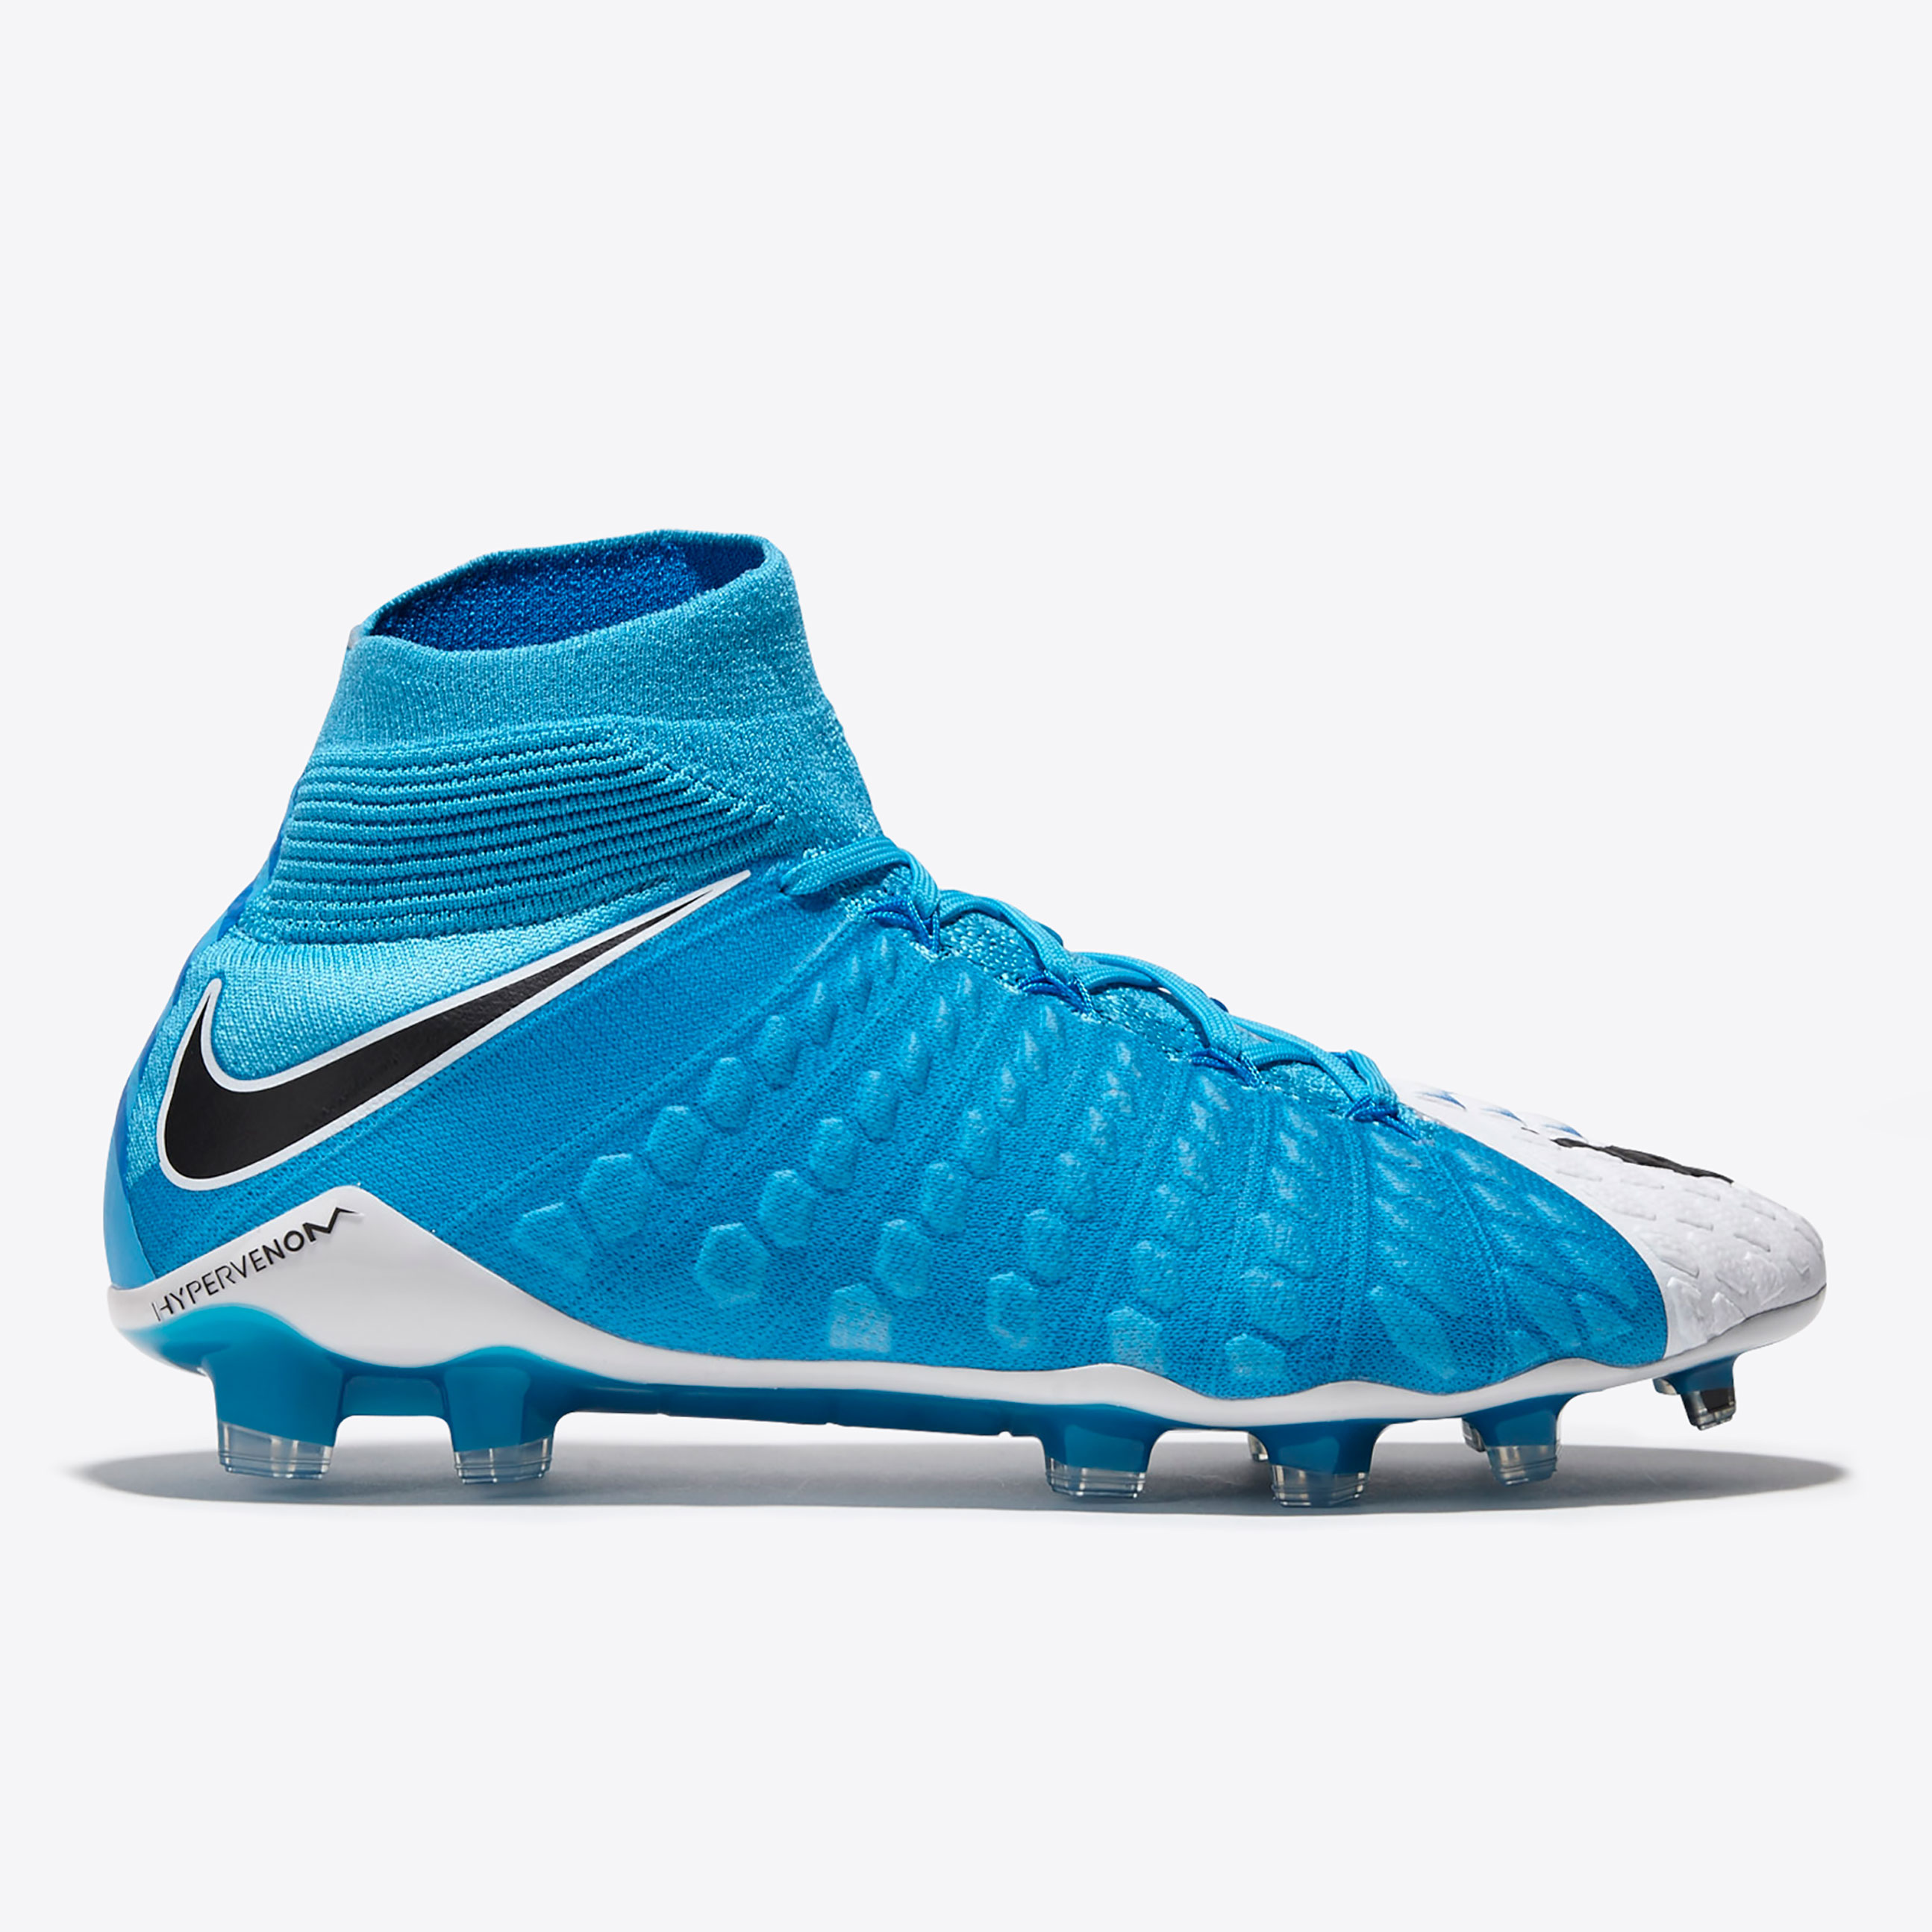 Buy Nike Hypervenom Rugby Boots - compare prices 361ca64f0